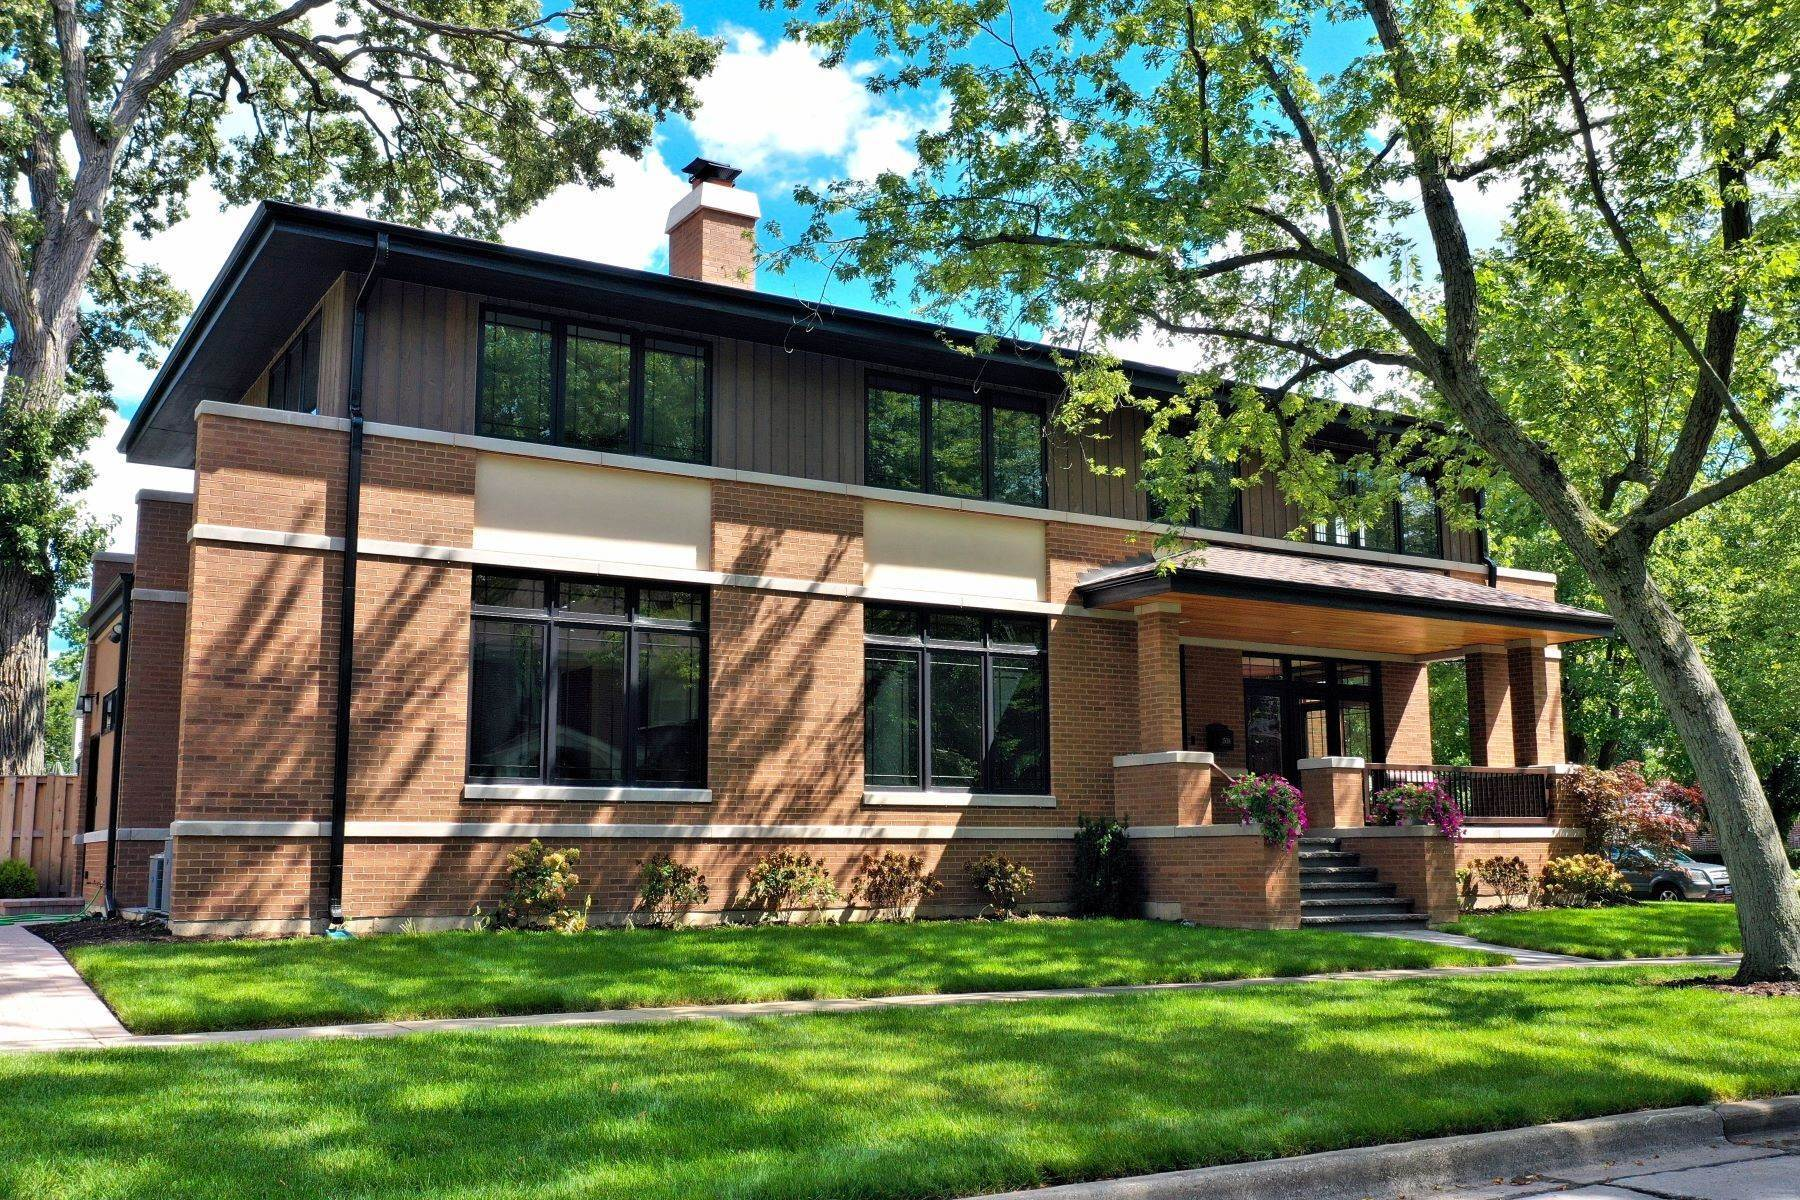 Property for Sale at Prairie Style Home 1538 Walnut Avenue Wilmette, Illinois 60091 United States